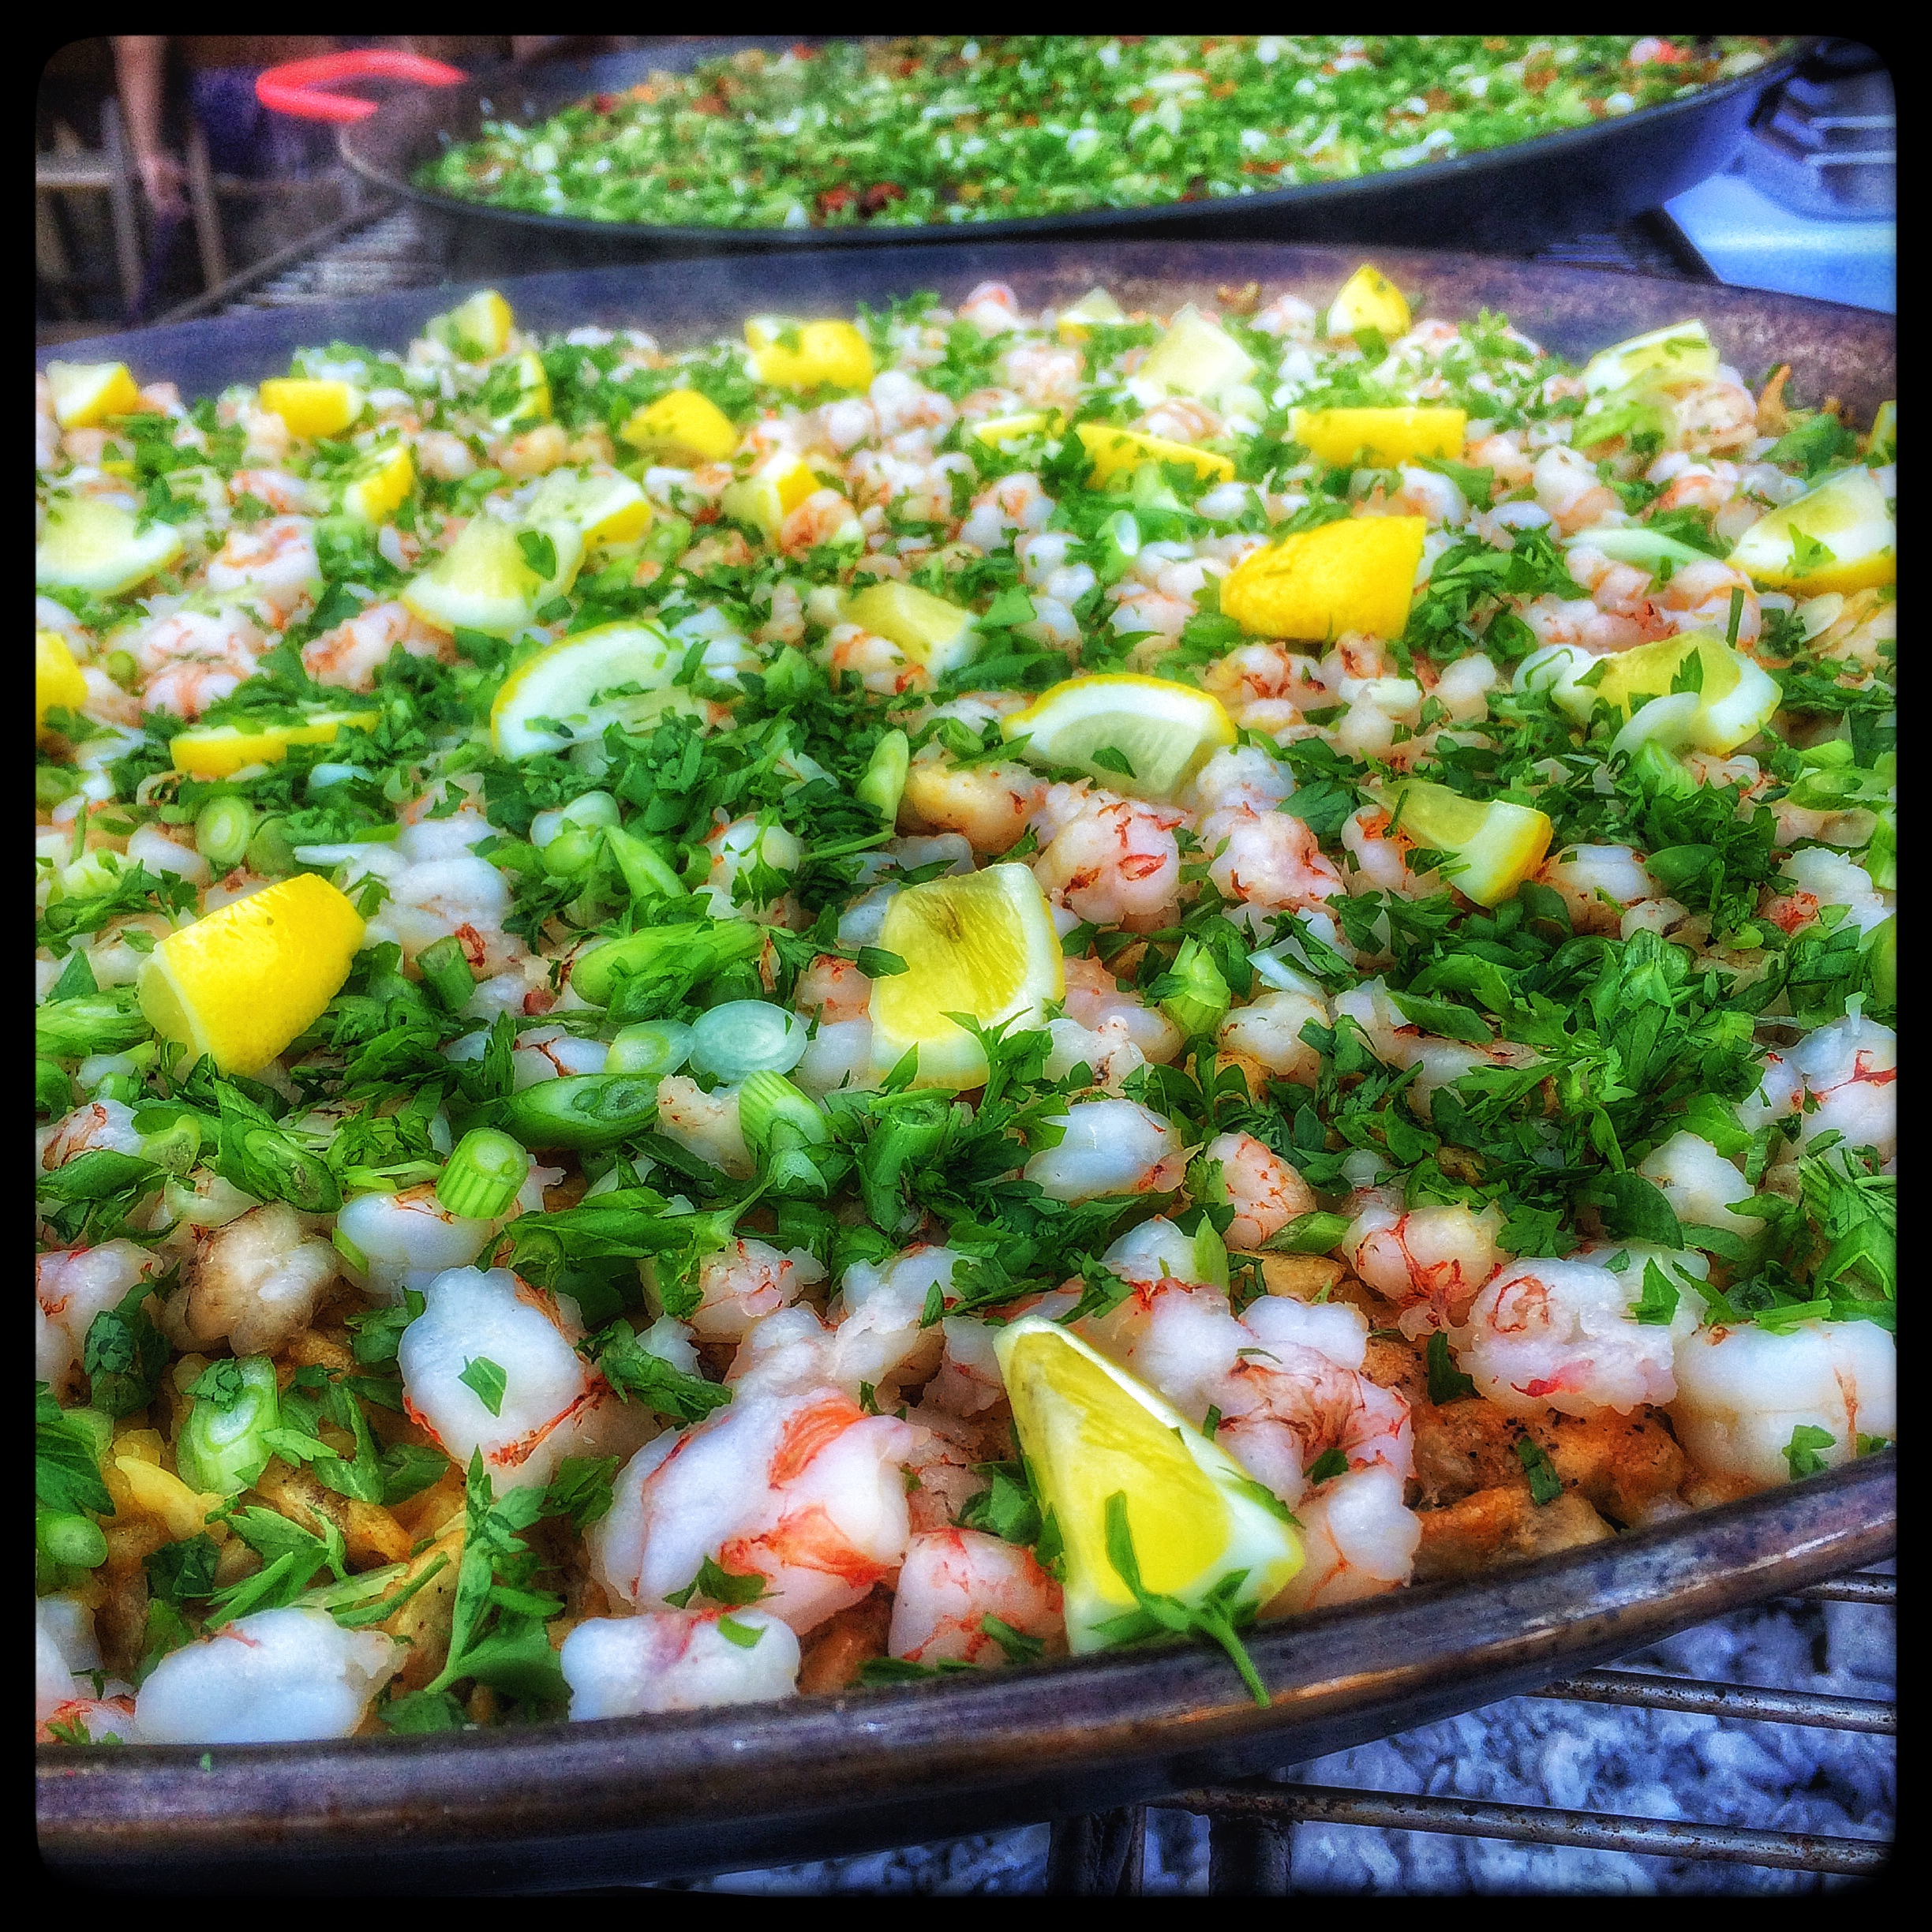 The Finished Paella